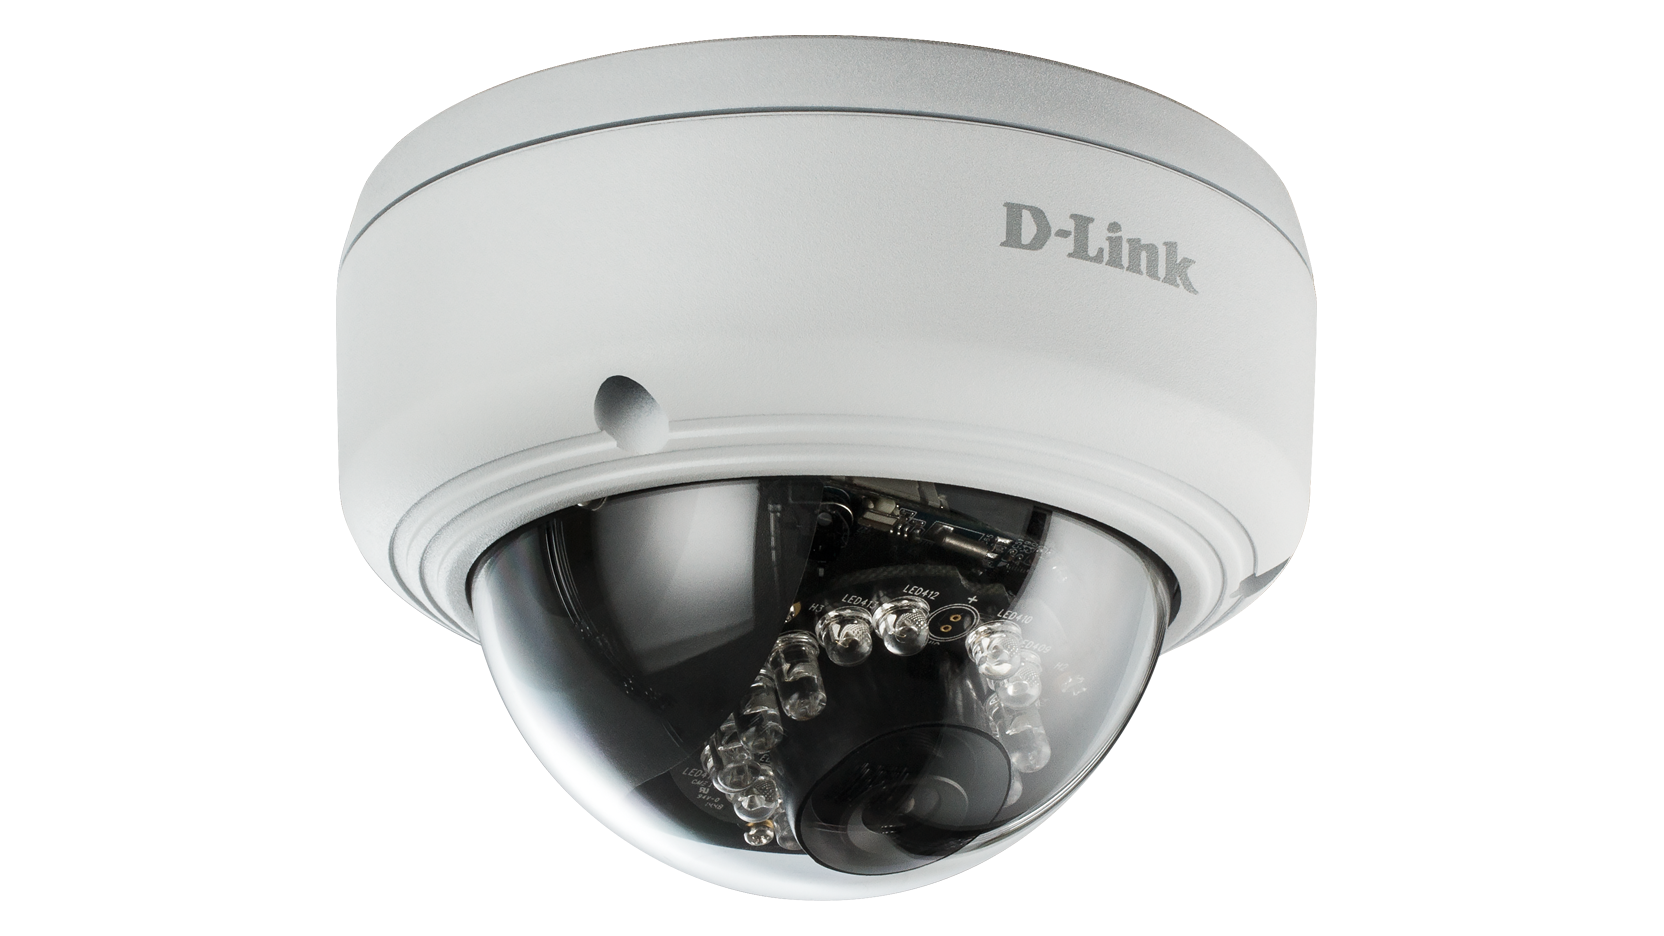 vigilance full hd poe dome network camera (dcs-4603) | d-link